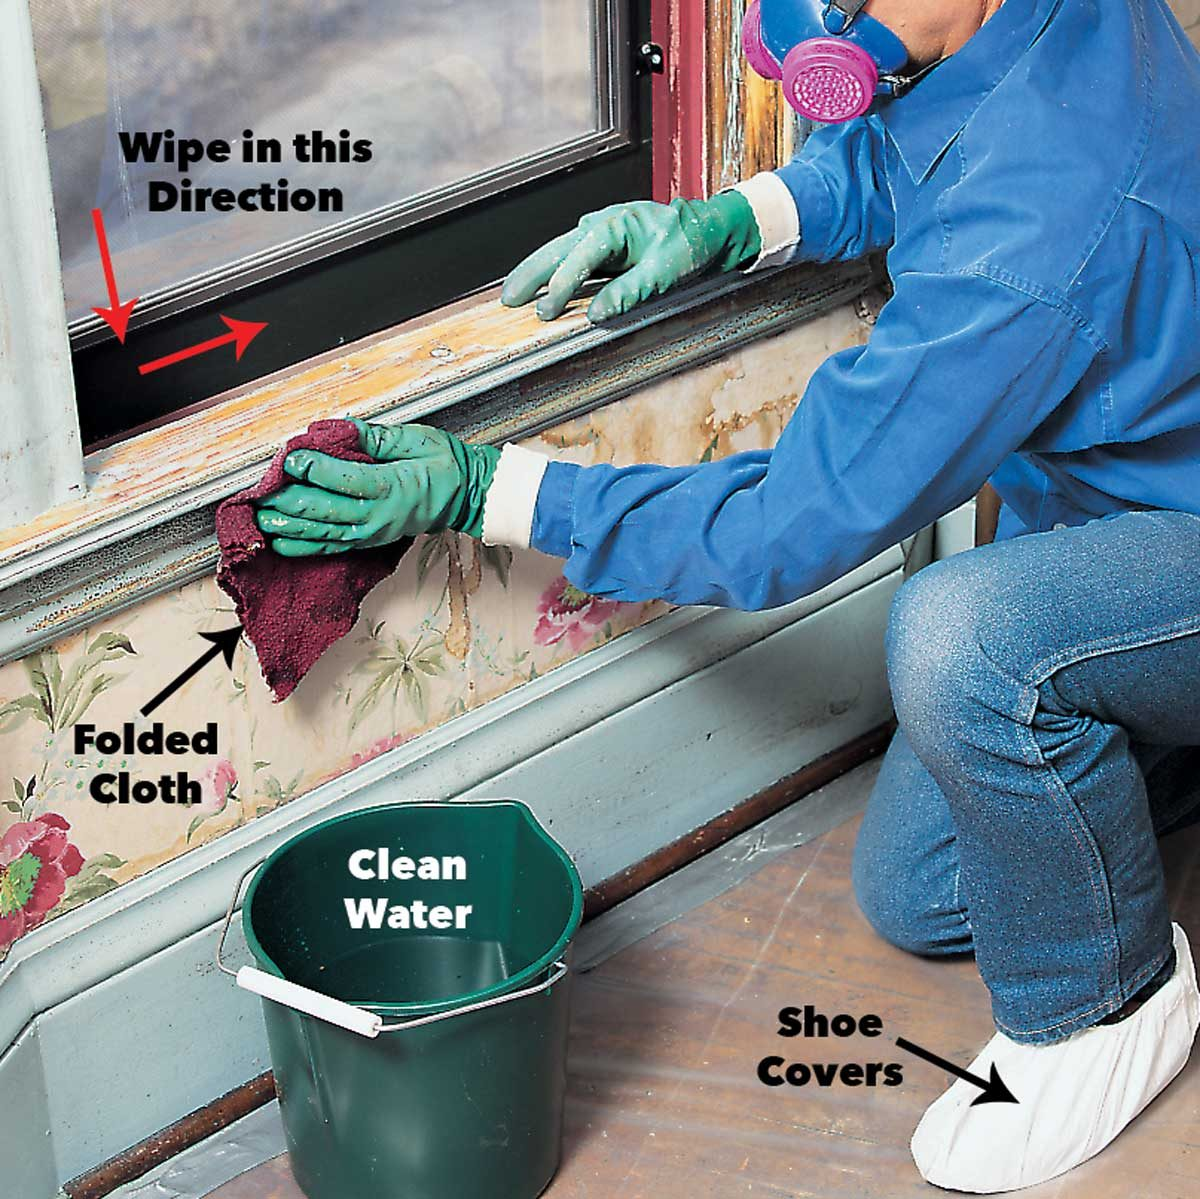 rinse lead paint with clean water